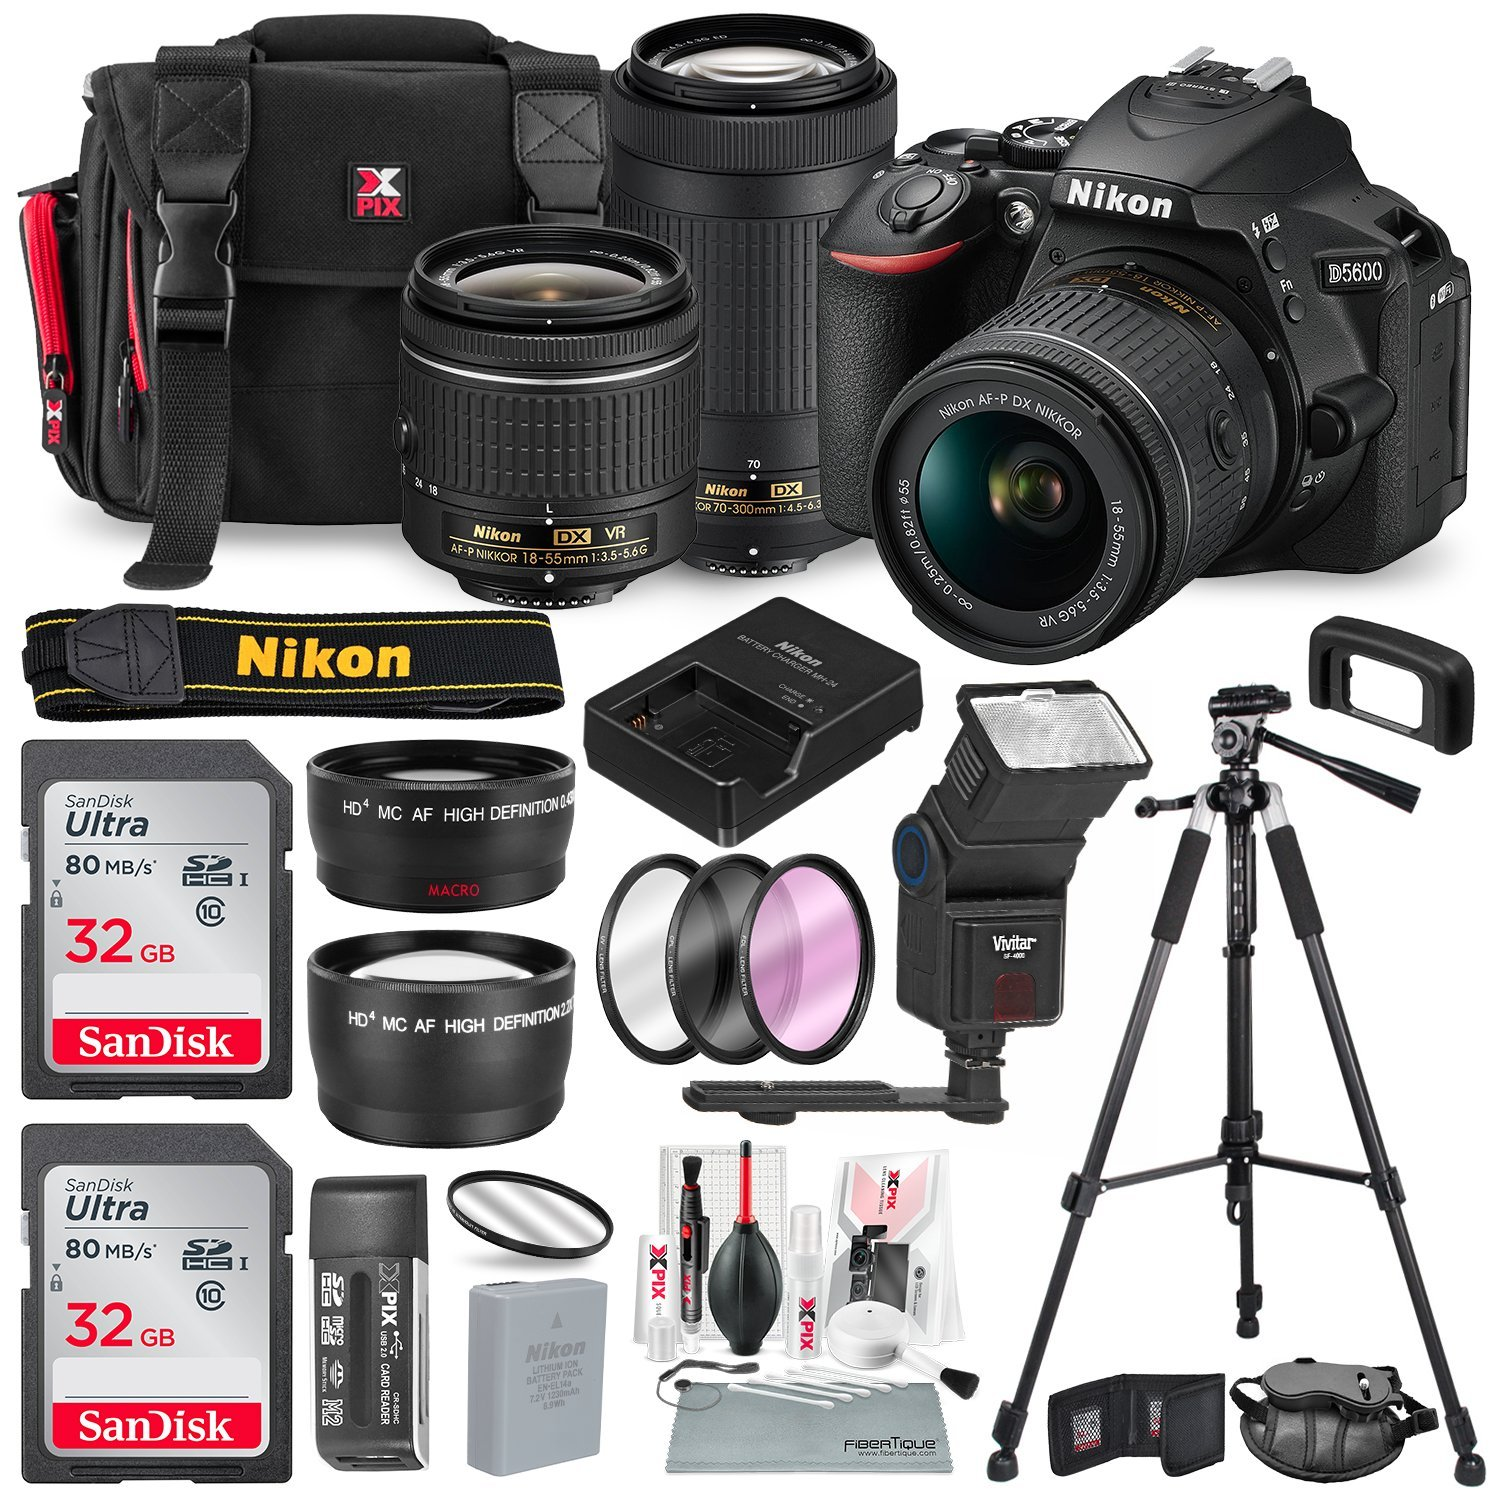 Nikon D5600 DSLR Camera with NIKKOR 18-55mm + 70-300mm Lenses W/2 x 32GB  Memory Card + Digital Slave Flash + Filters, Telephoto & Wideangle Lens,  Xpix